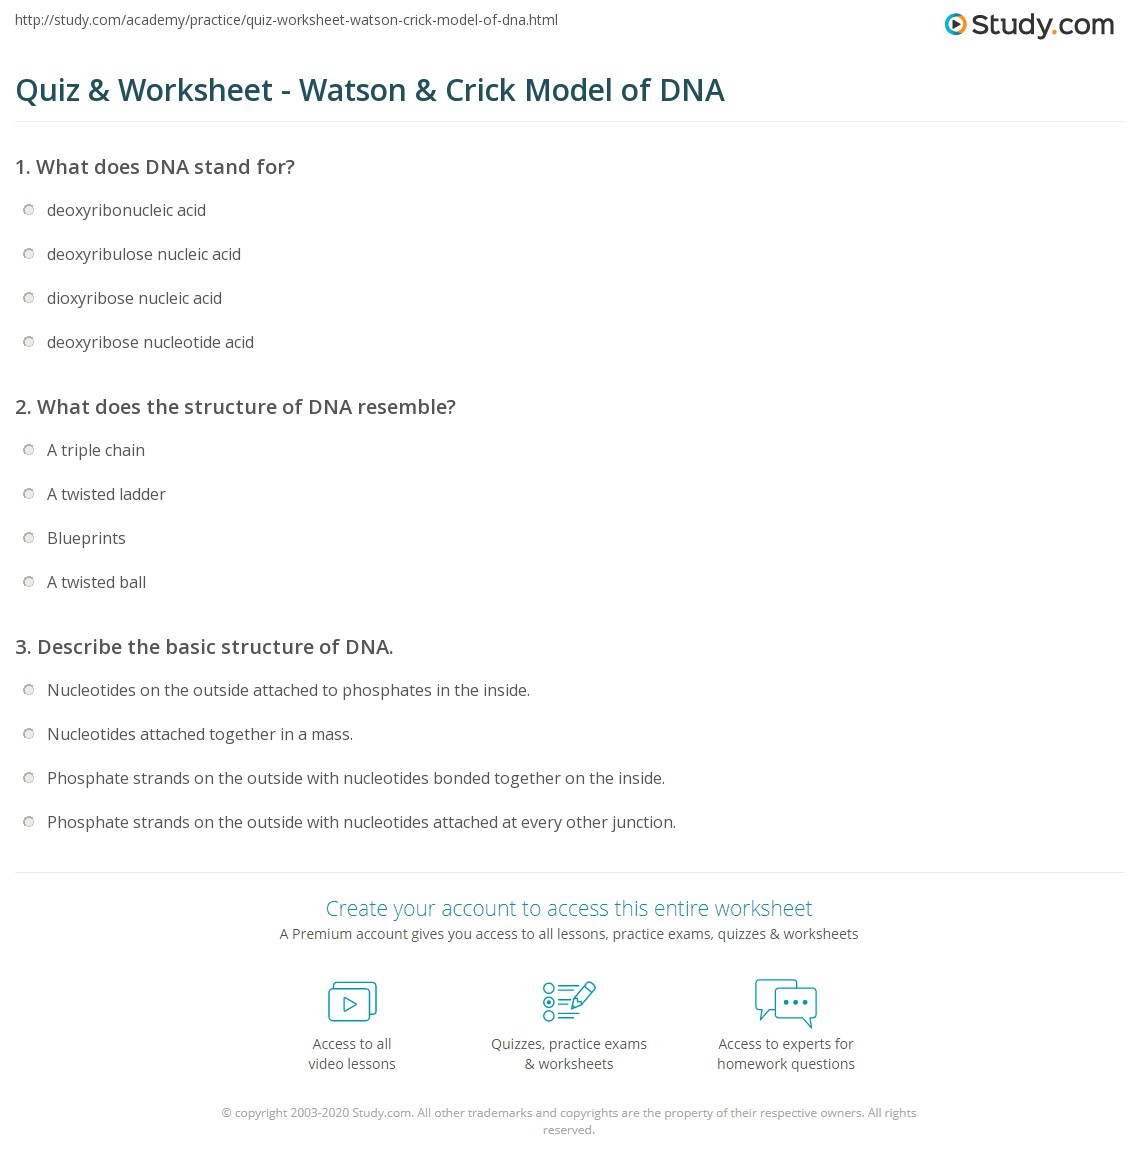 Quiz Worksheet Watson Crick Model of DNA – Dna the Double Helix Worksheet